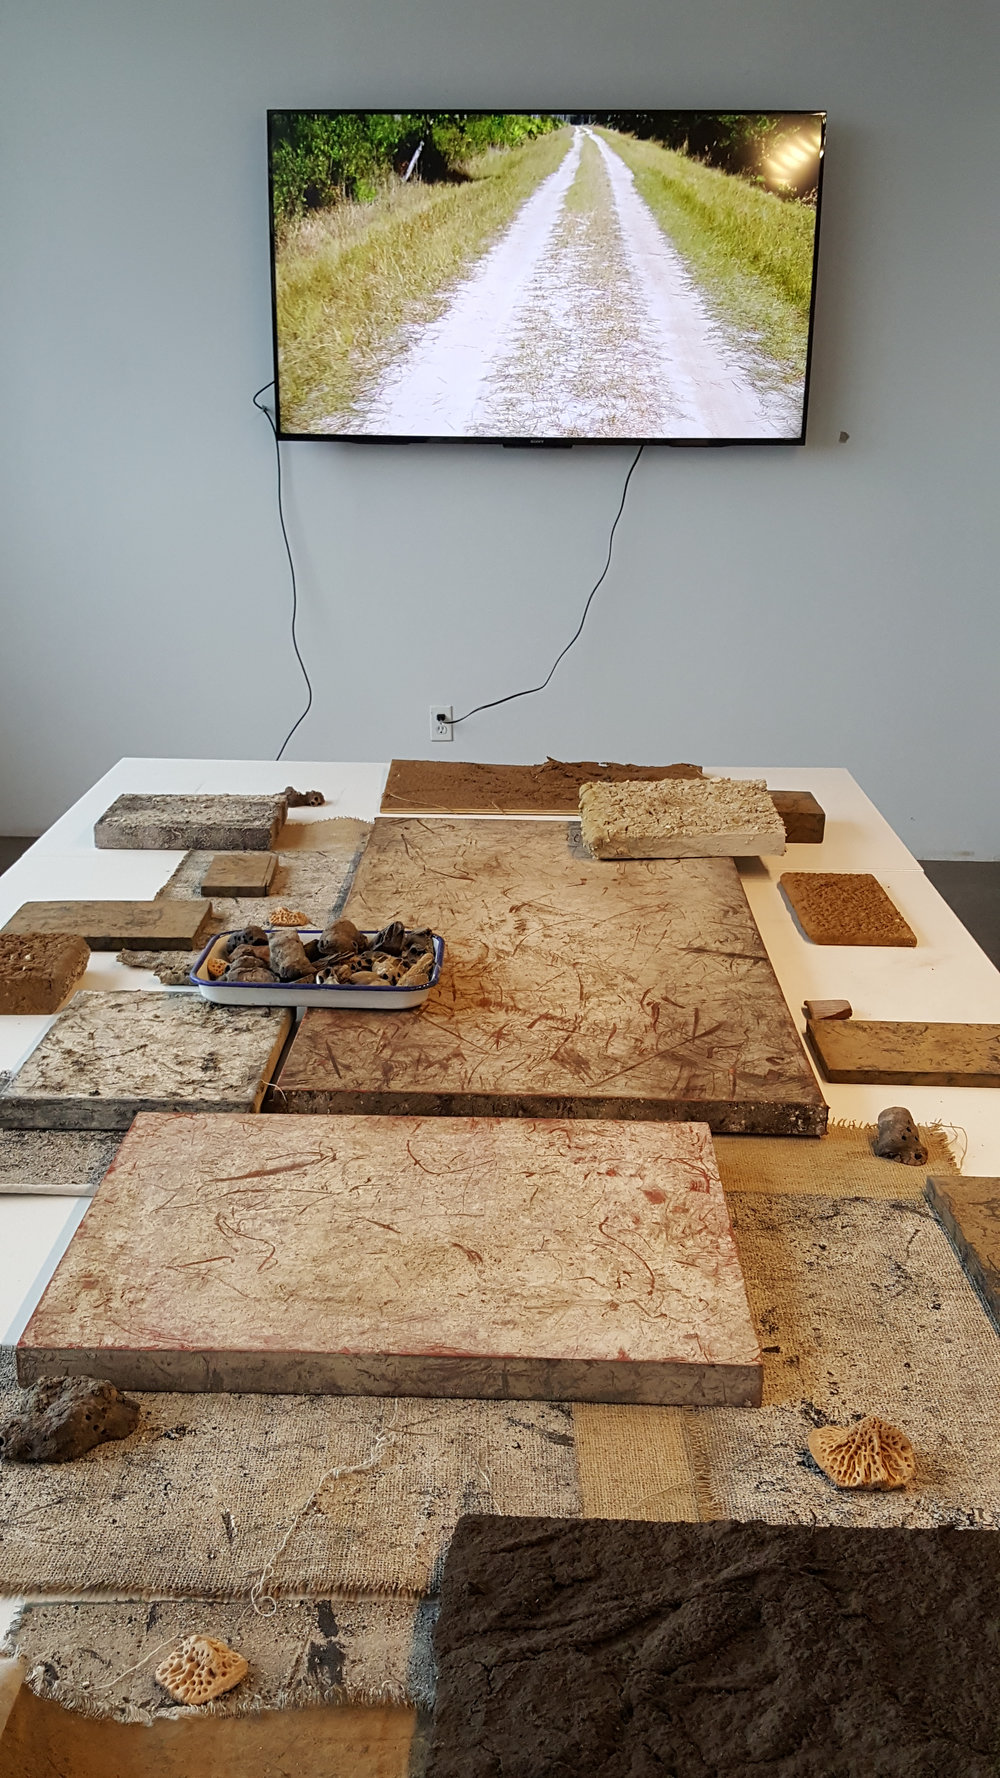 Experimental Installation - Video, Sound, Assemblage, Found Objects